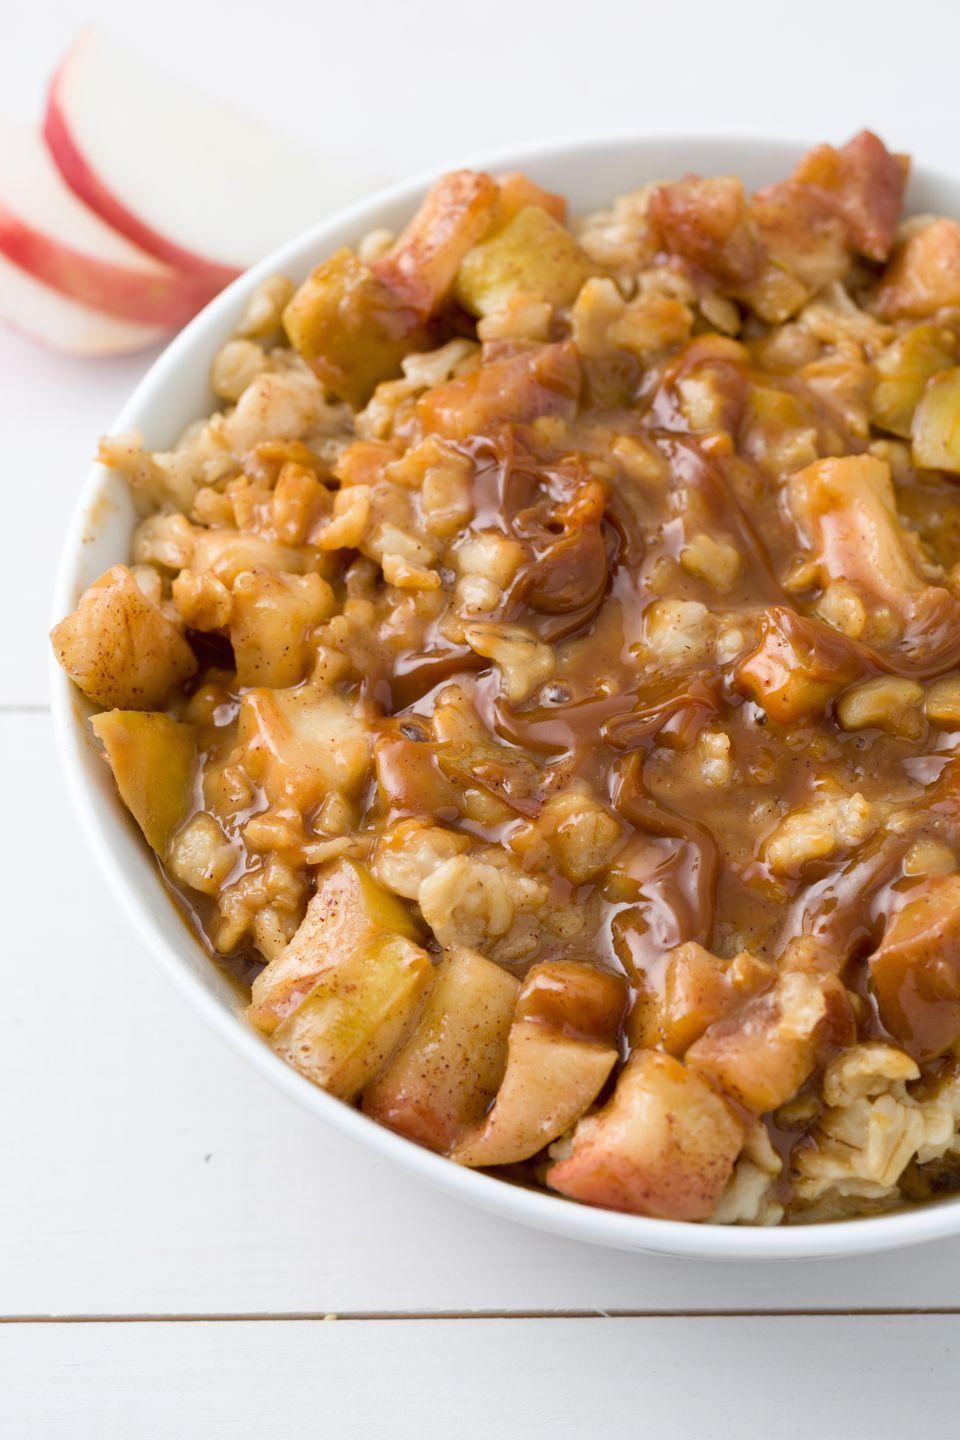 "<p>Yes, we love apple pie so much we turned it into oatmeal. Drizzled with caramel, it's a breakfast you won't forget.</p><p>Get the recipe from <a href=""/cooking/recipe-ideas/recipes/a44493/caramel-apple-pie-oatmeal-recipe/"" data-ylk=""slk:Delish"" class=""link rapid-noclick-resp"">Delish</a>.<br></p>"